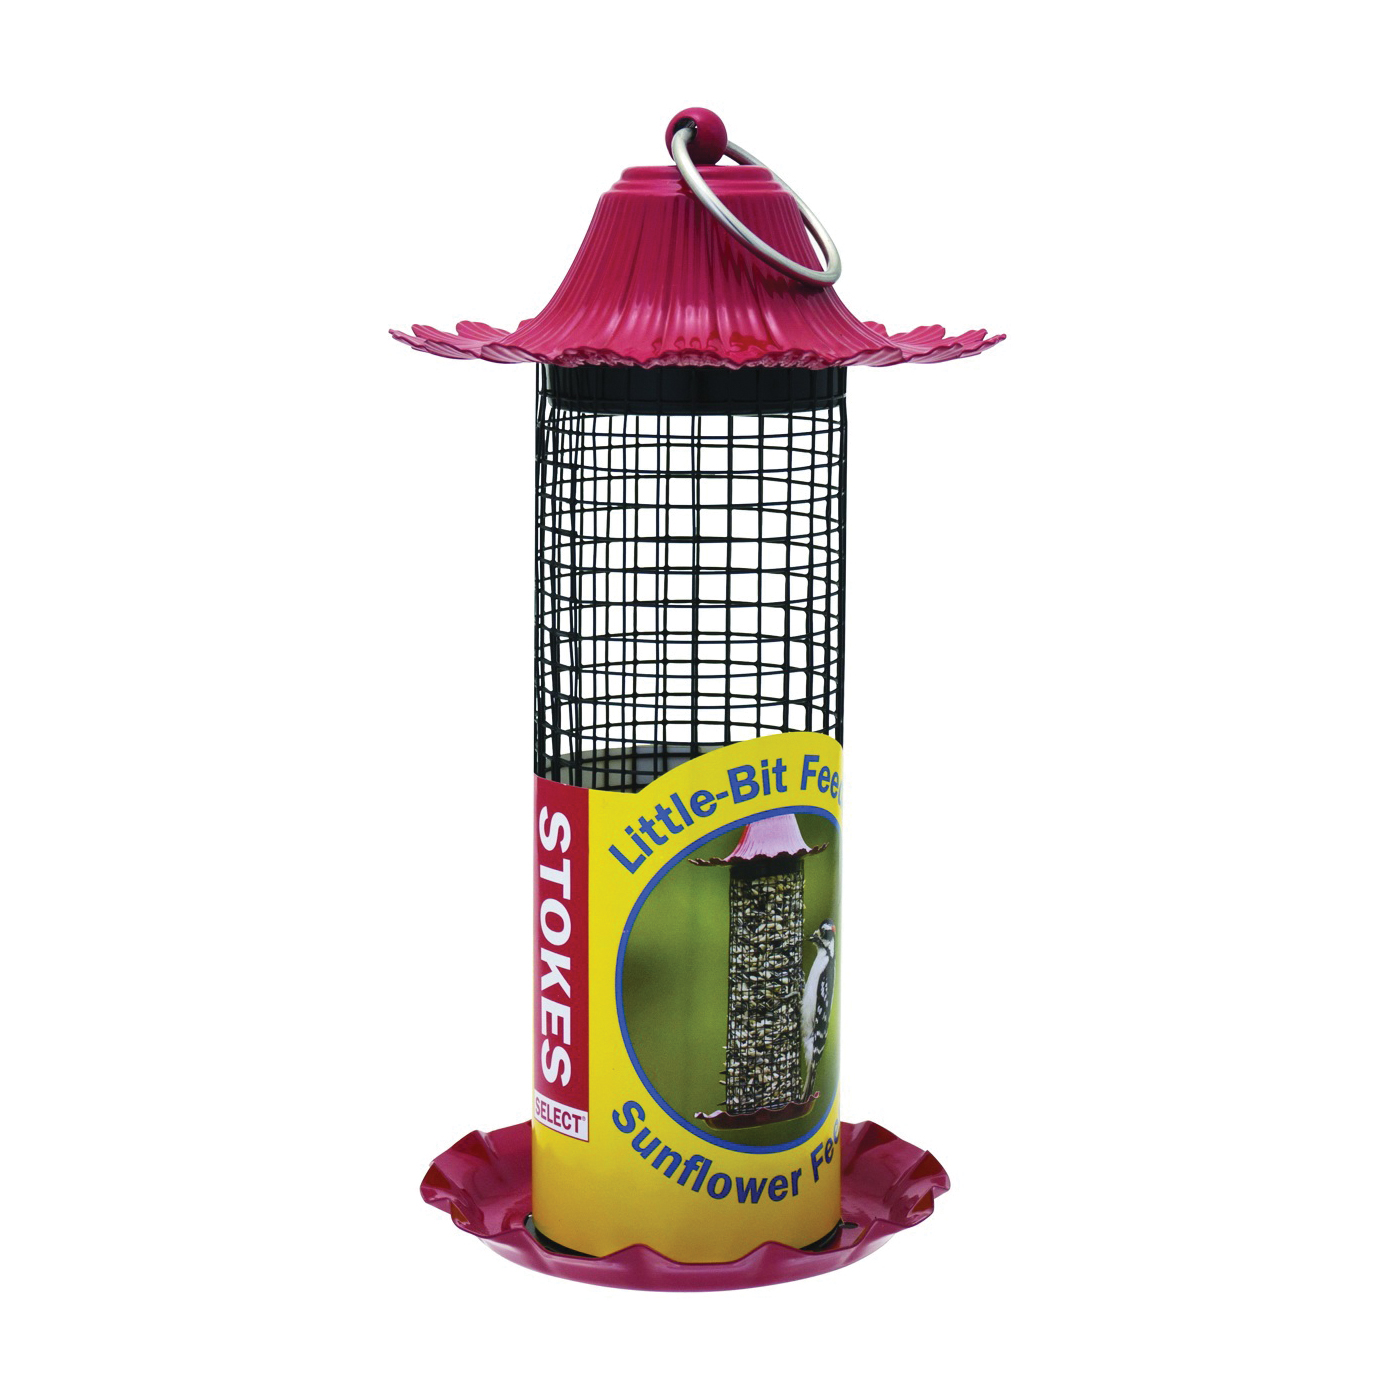 Picture of Stokes Select 38195-.5QT Sunflower Feeder, 8-13/32 in H, 0.5 qt, Metal, Red, Powder-Coated, Hanging Mounting